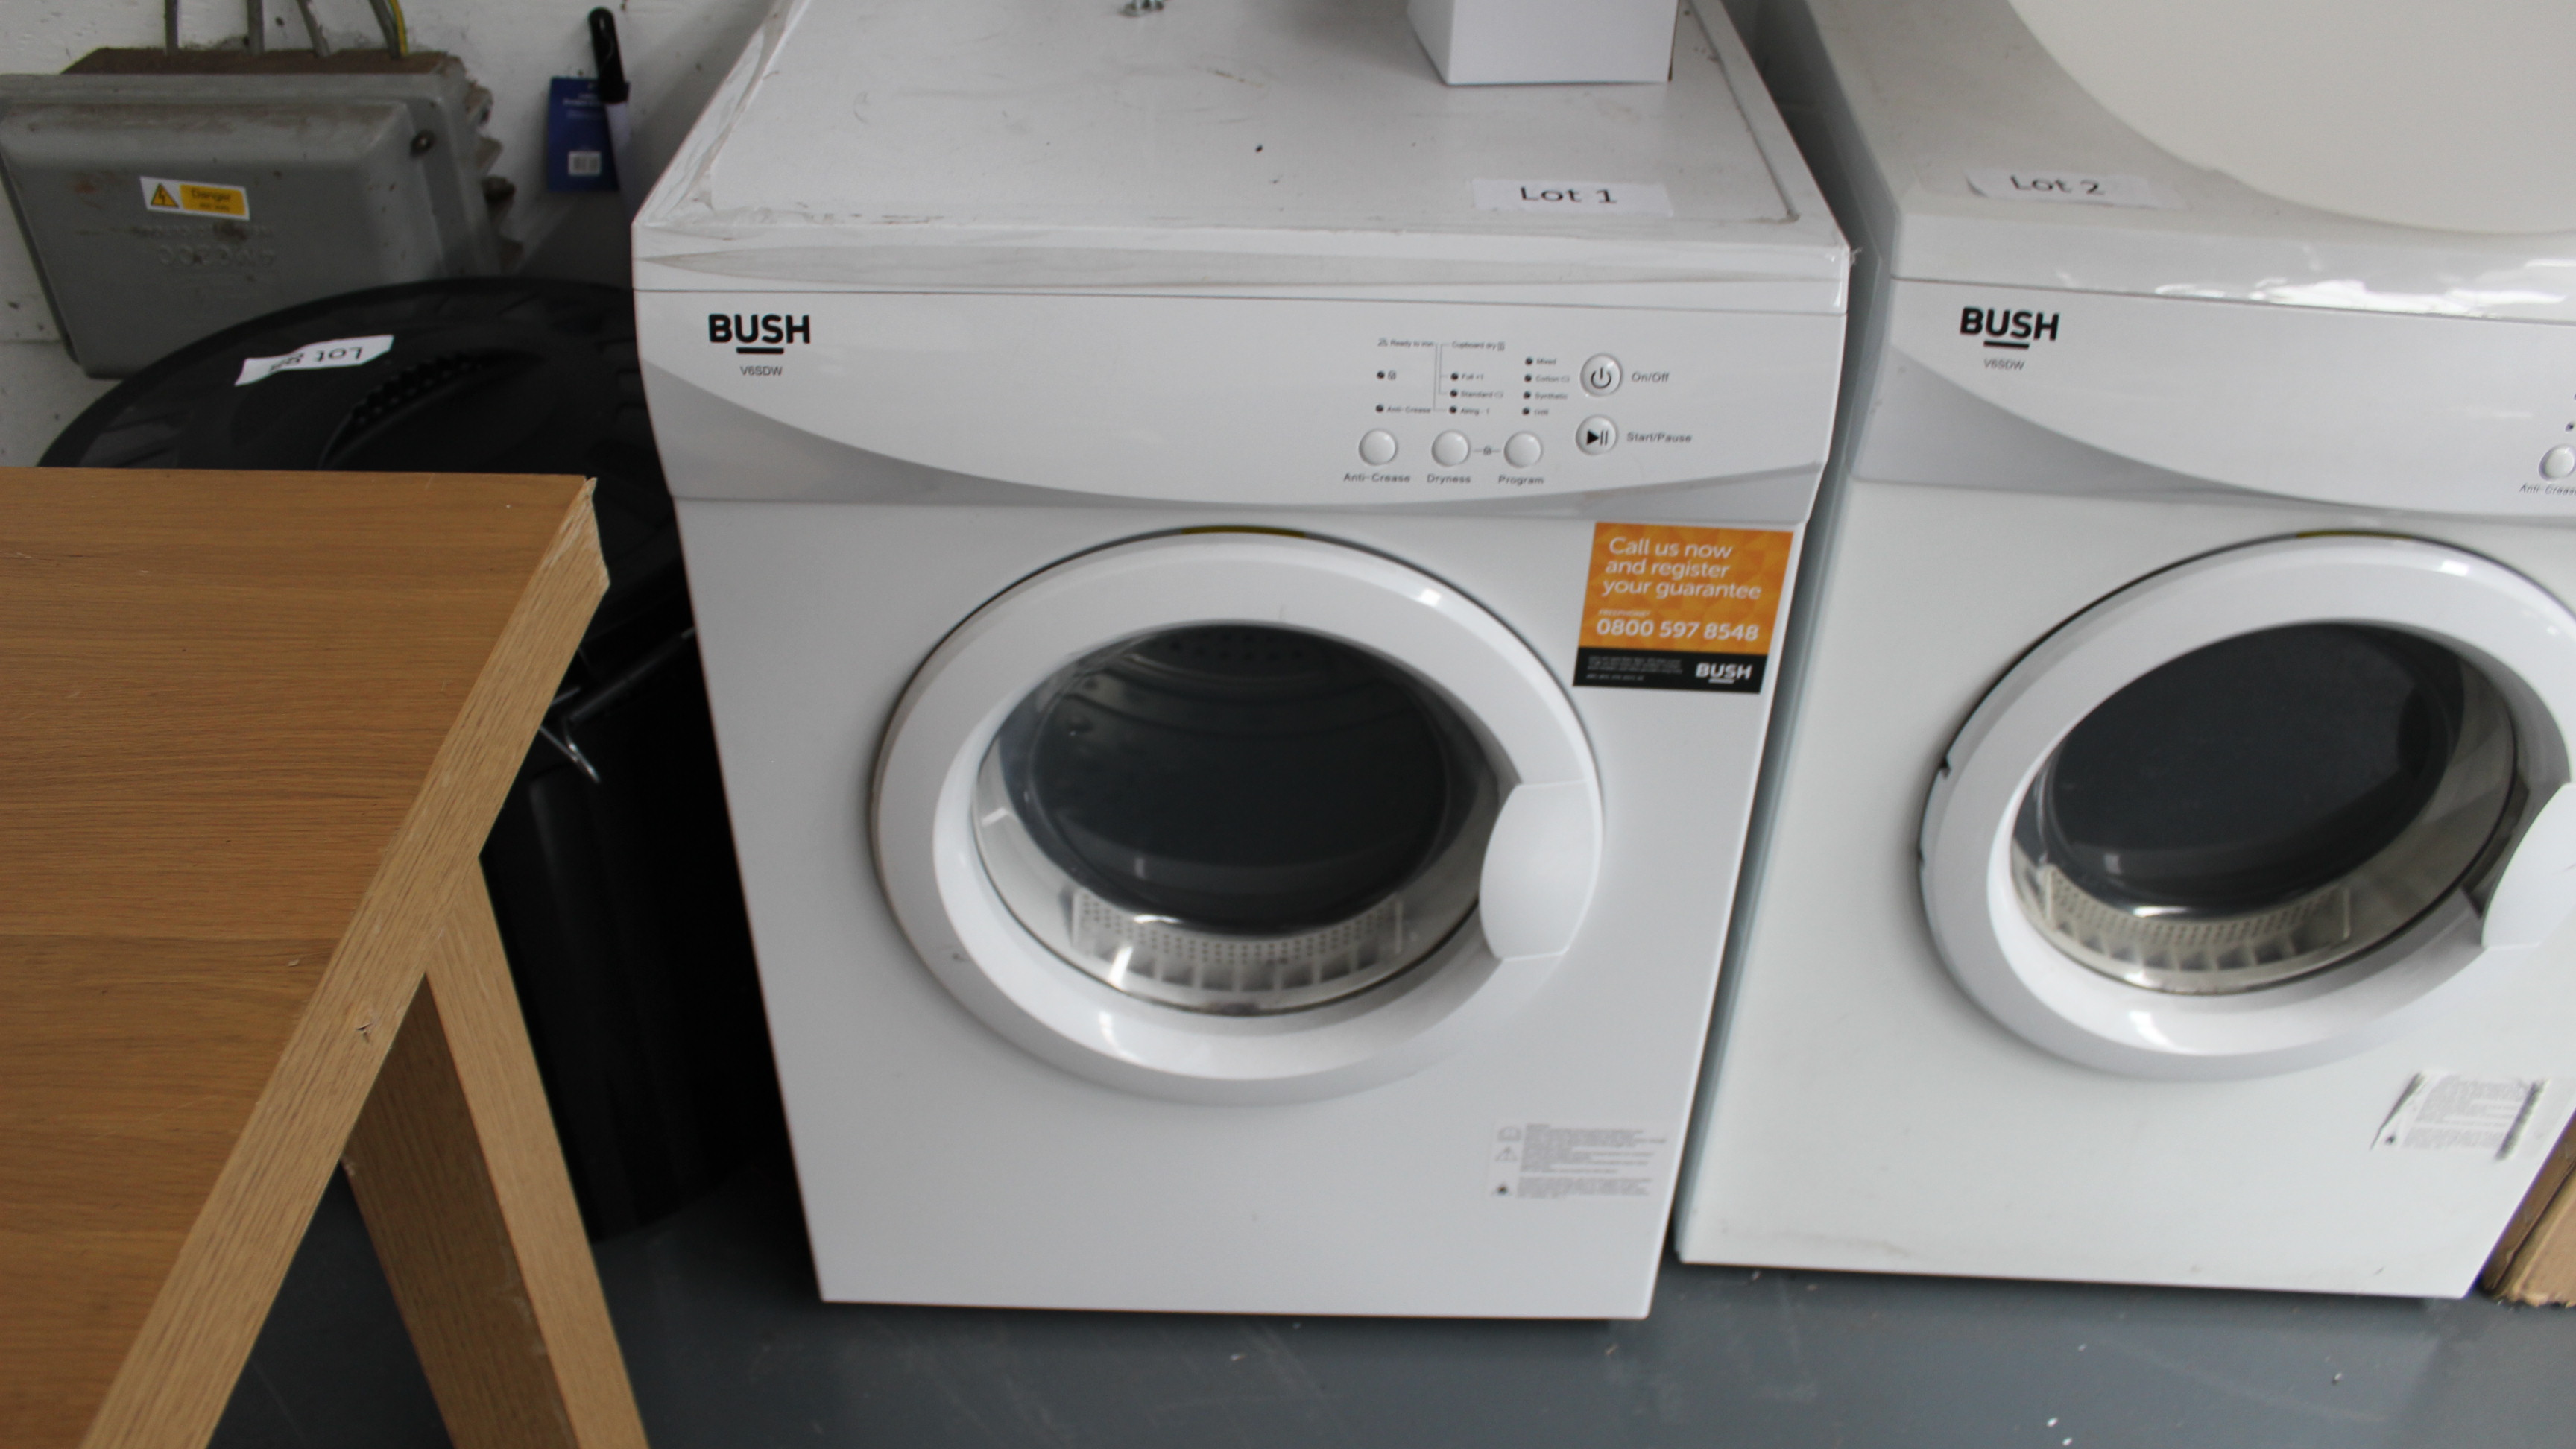 Lot 1 - Bush V6SDW Tumble Dryer Customer Returns